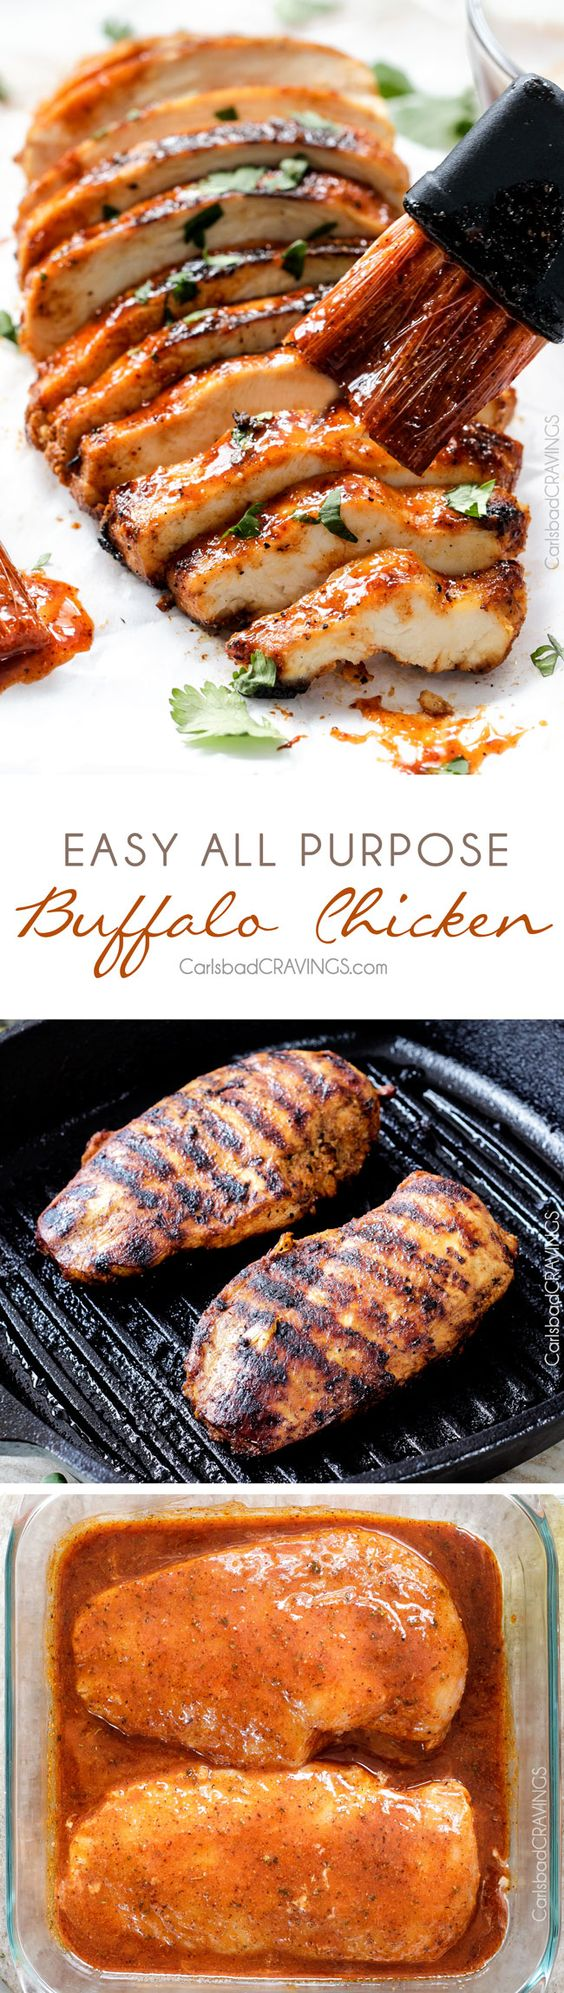 All purpose buffalo chicken marinade recipe tacos for Buffalo chicken sandwich recipe grilled